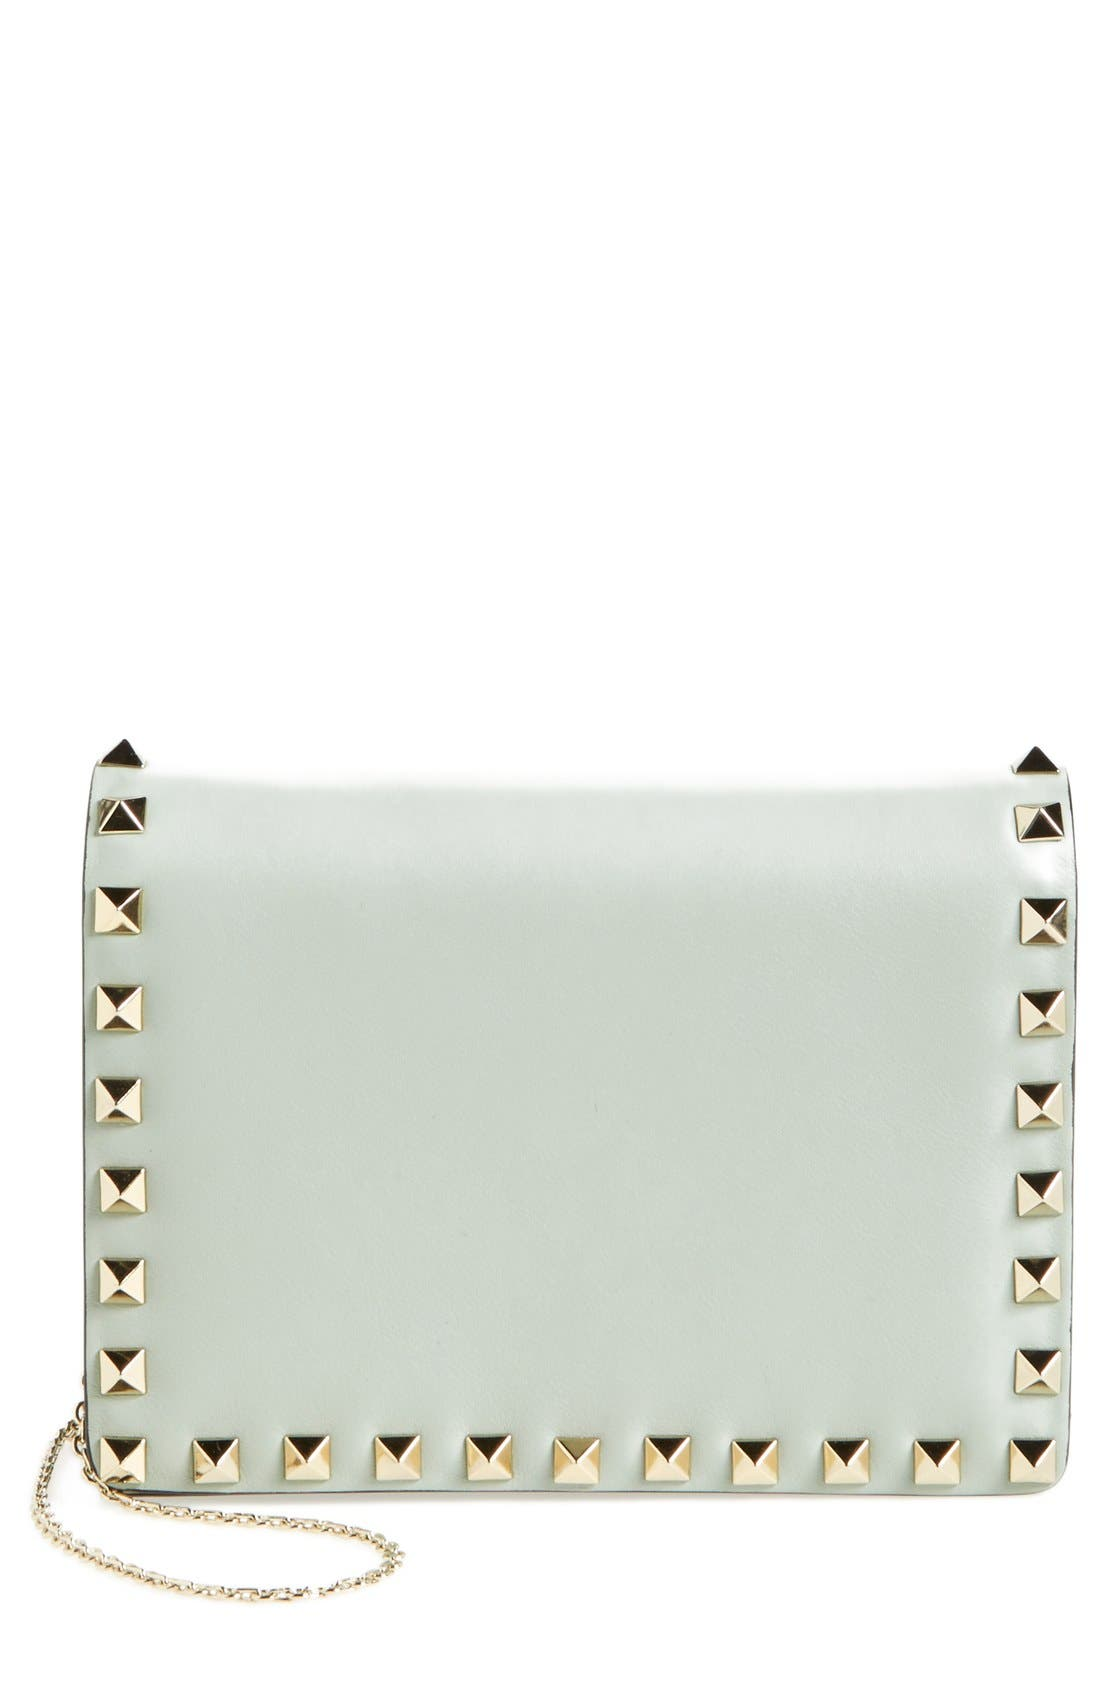 Alternate Image 1 Selected - Valentino 'Rockstud' Leather Crossbody Bag